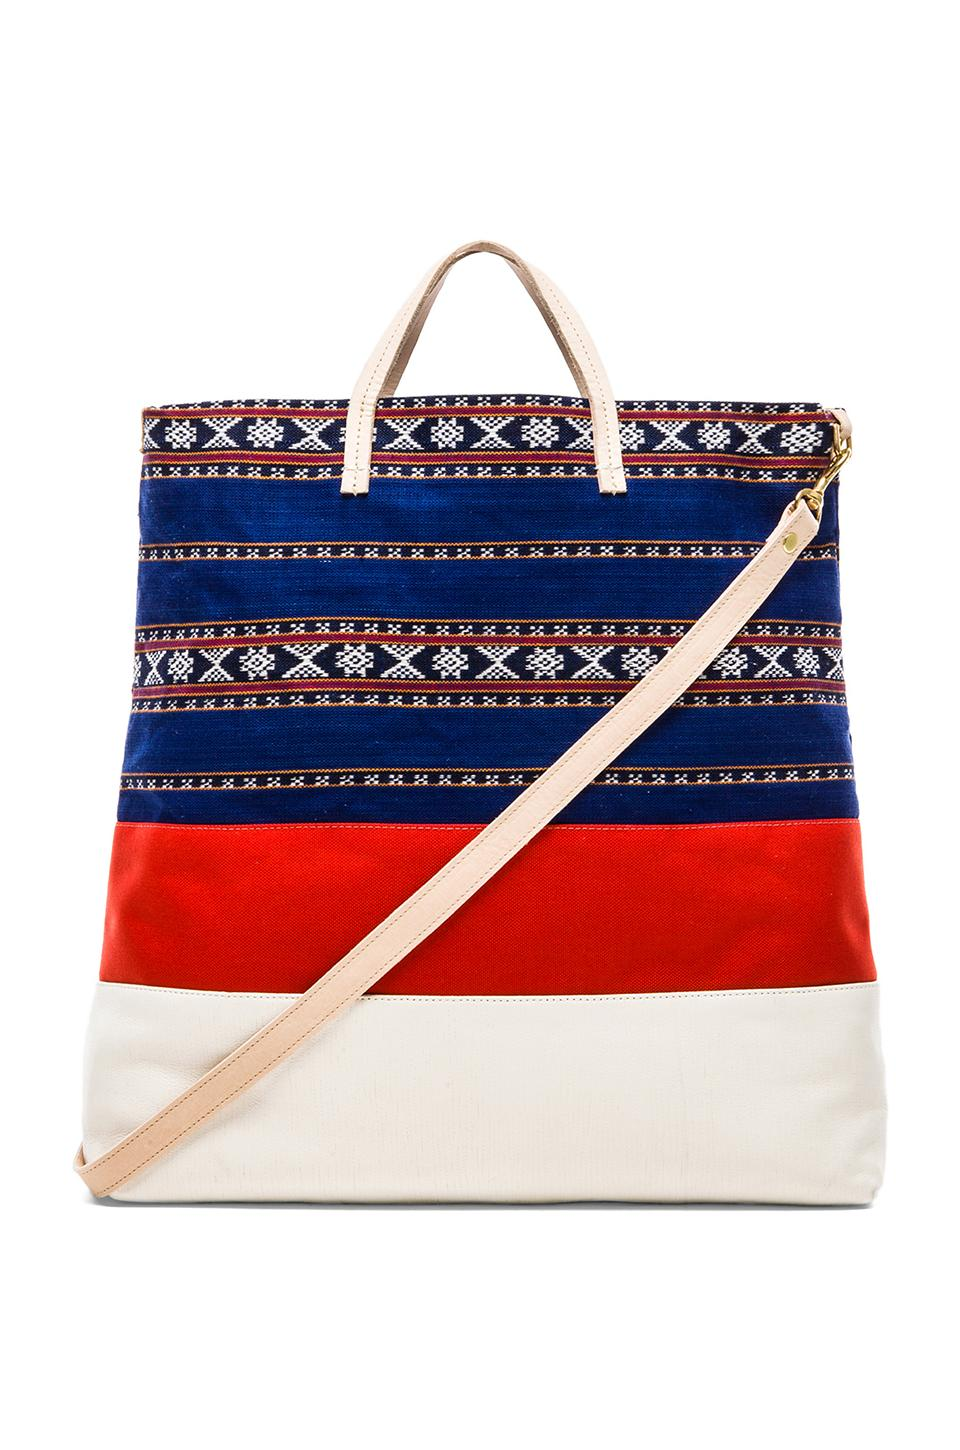 Clare V. Matilde Canvas Tote in Mexican Print